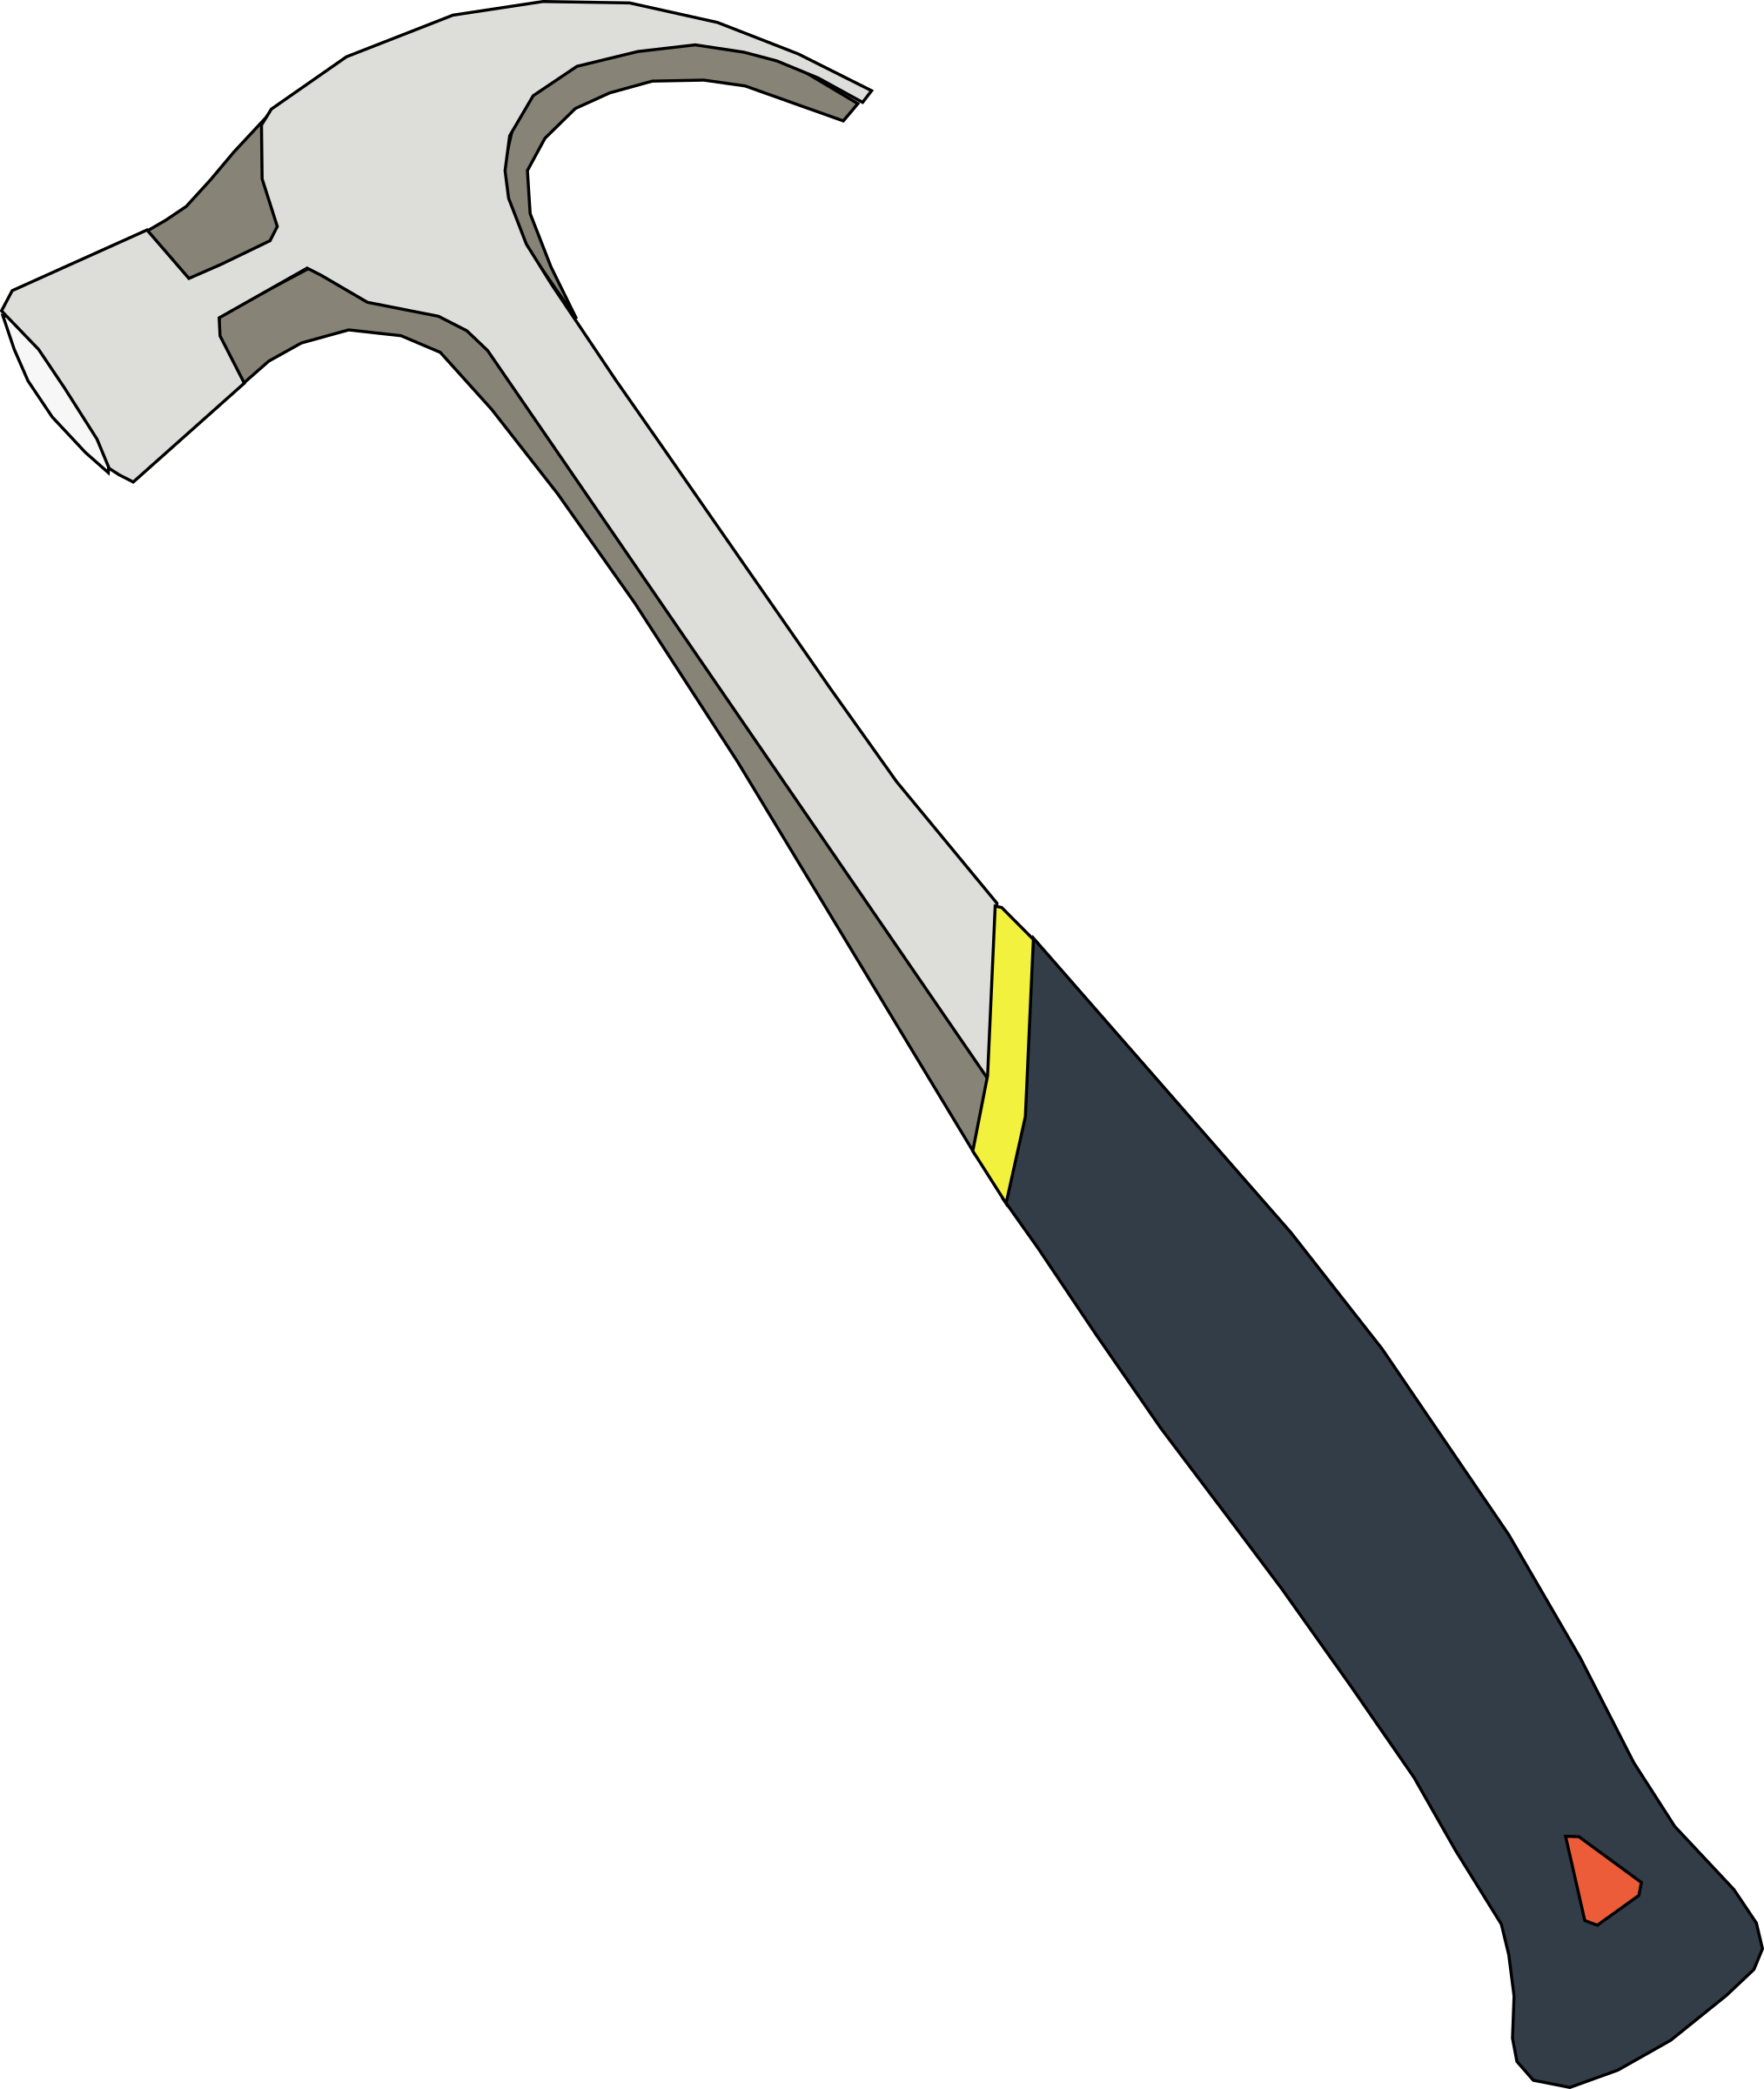 Icons png free and. Nail clipart small hammer